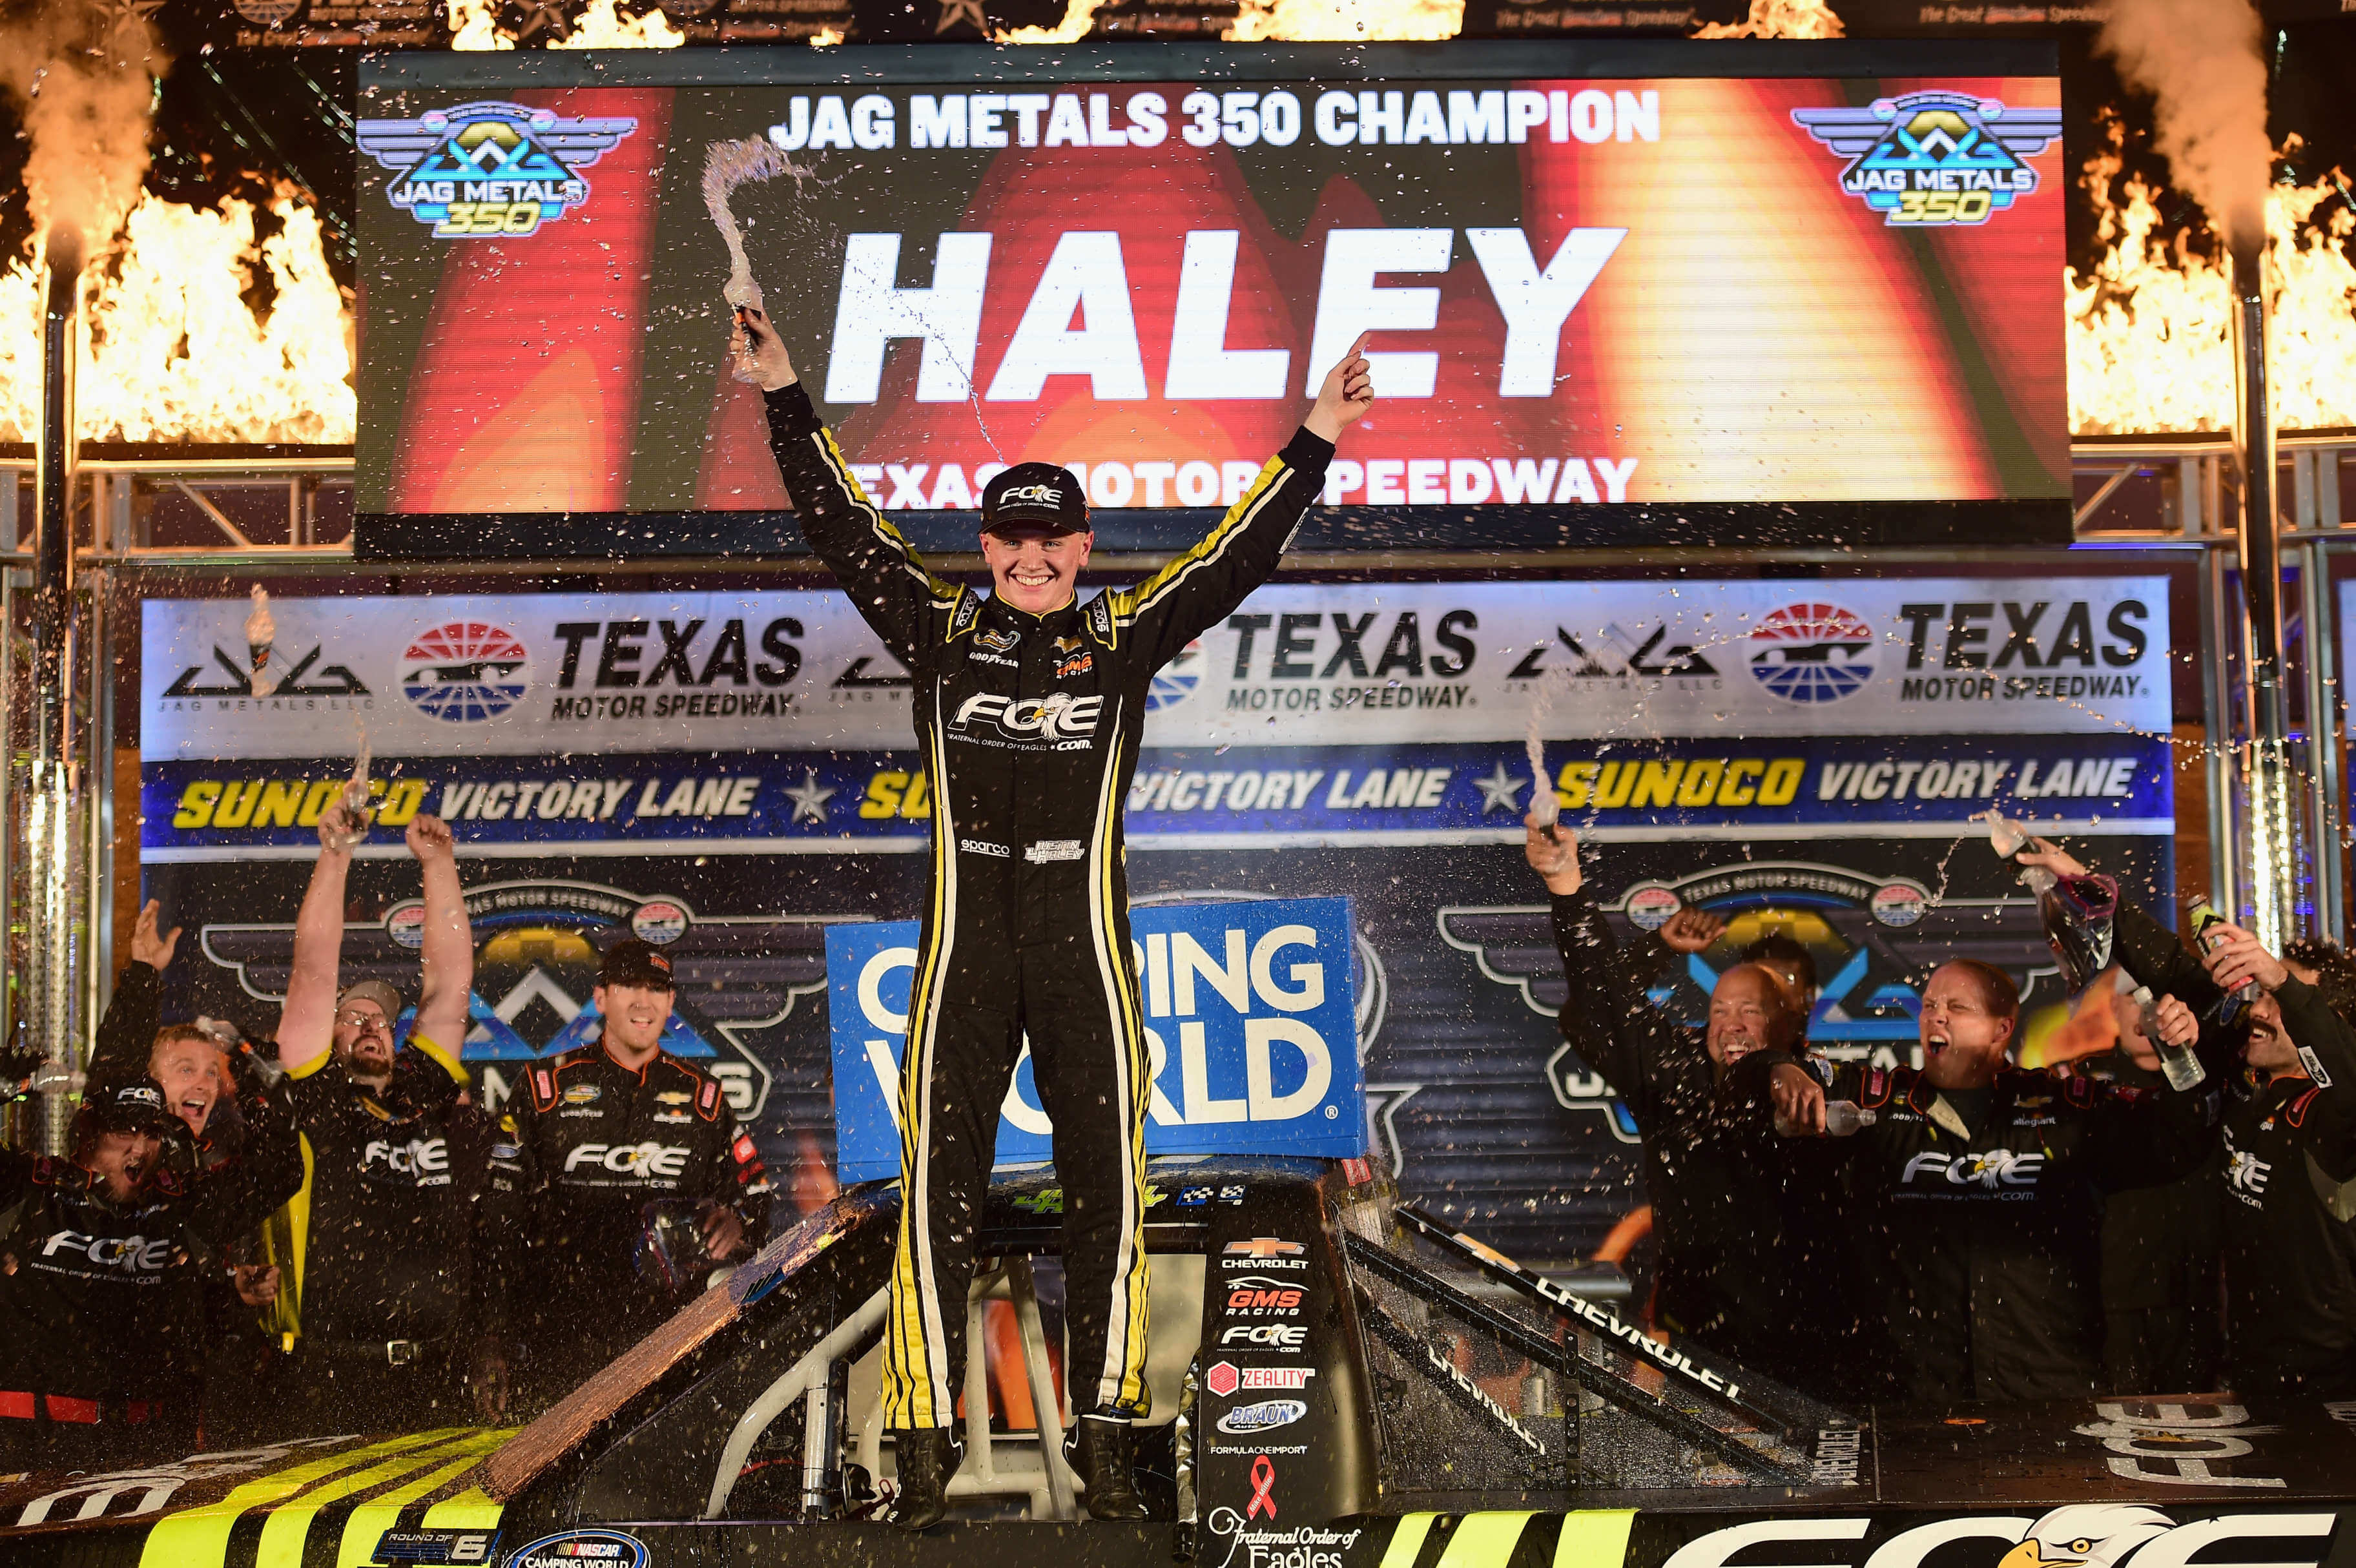 Justin Haley in vicory lane at Texas Motor Speedway